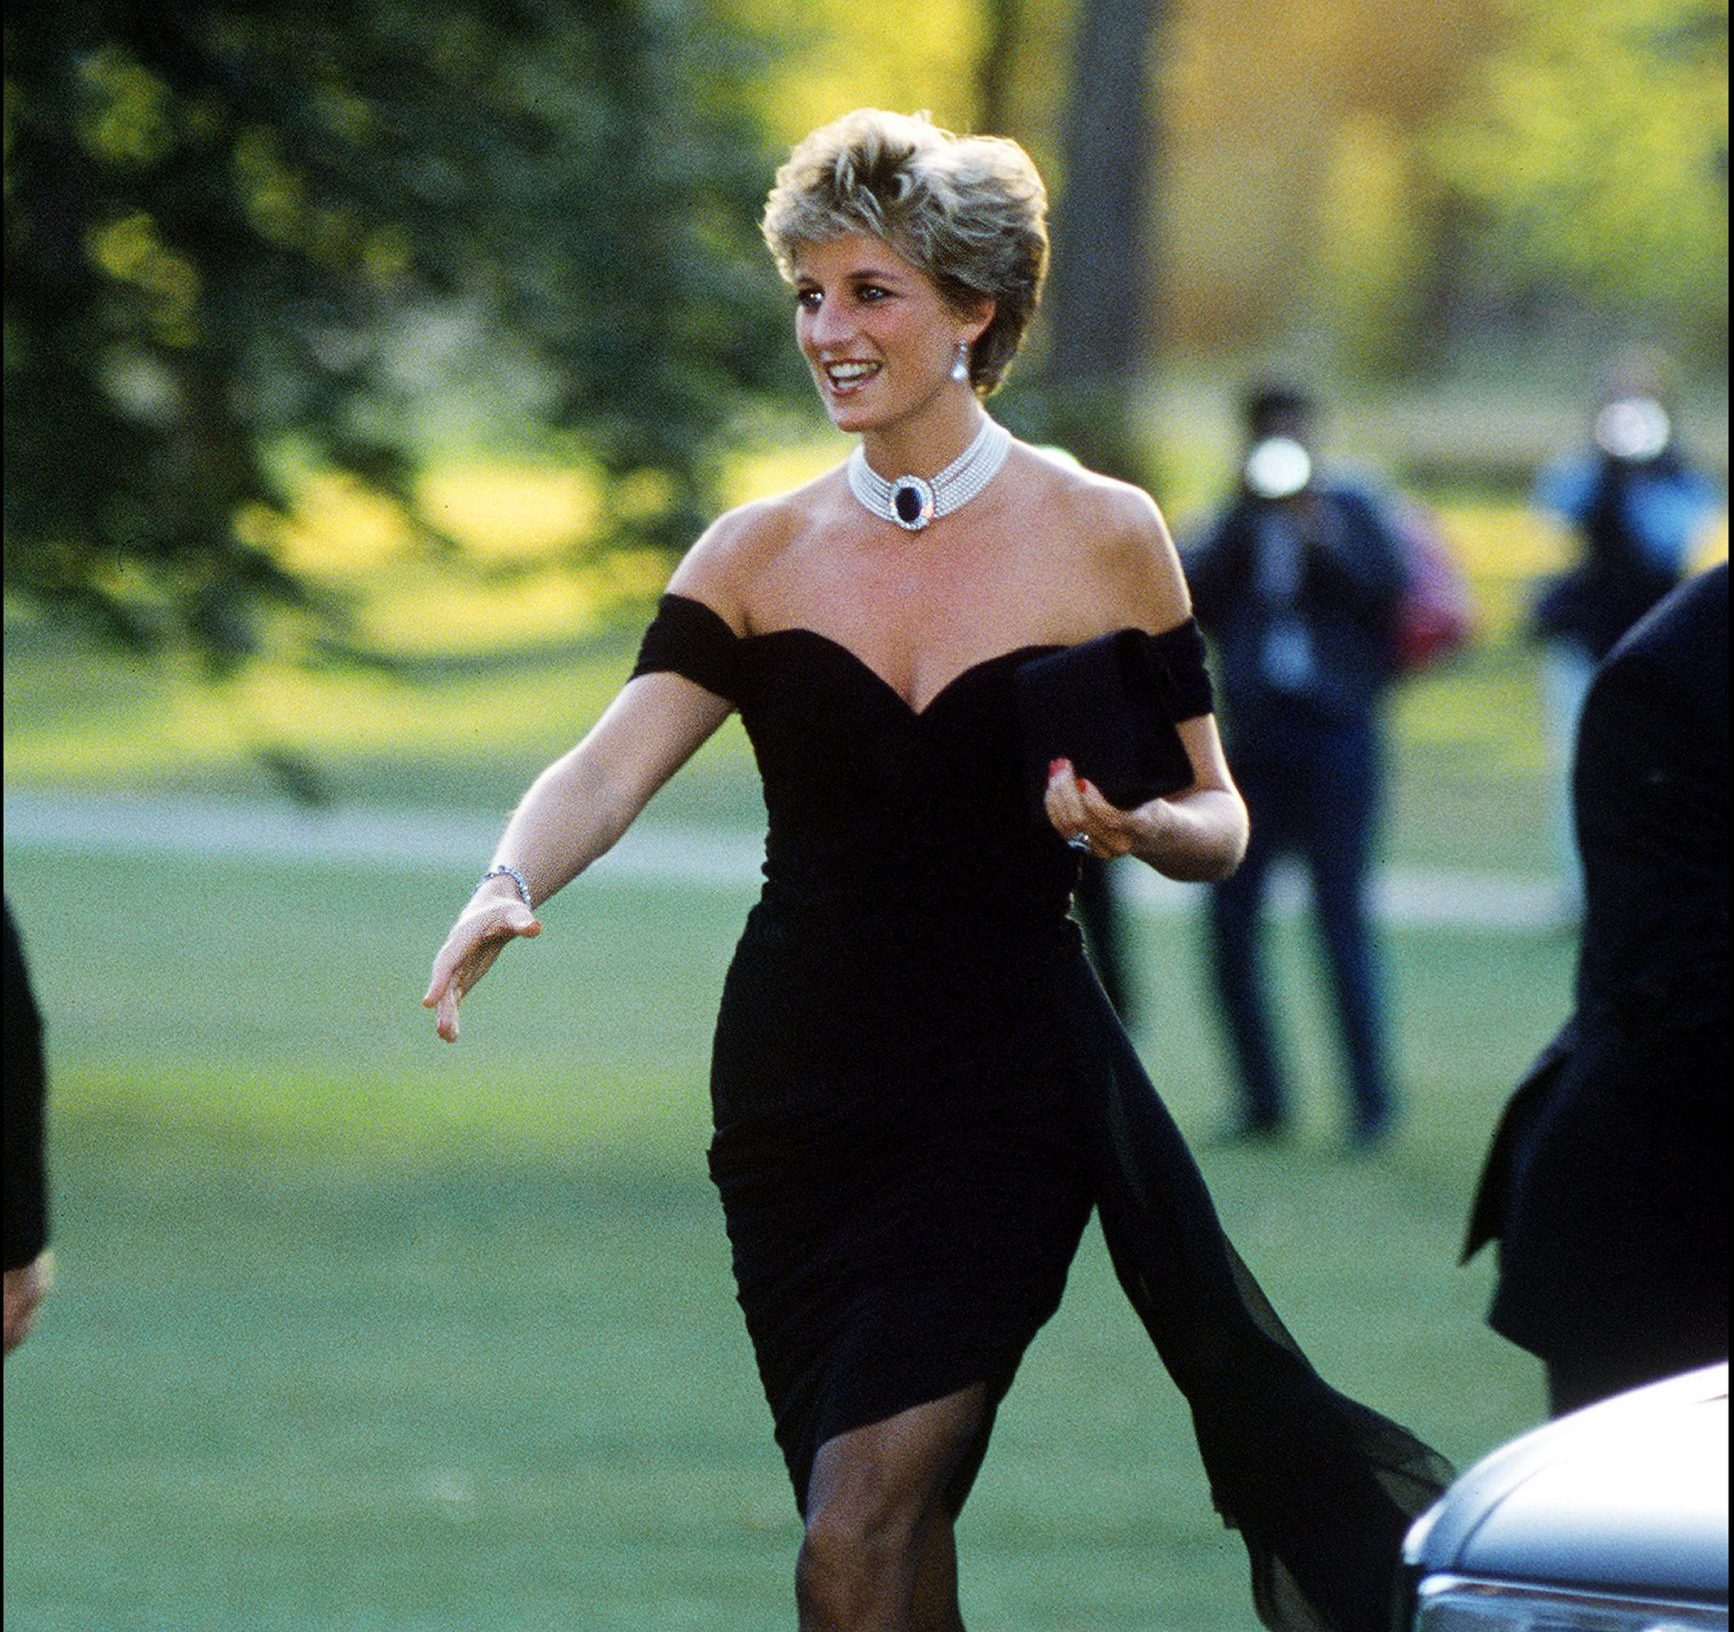 GettyImages 73399197 scaled e1621524629637 Princess Diana's Most Iconic Outfits